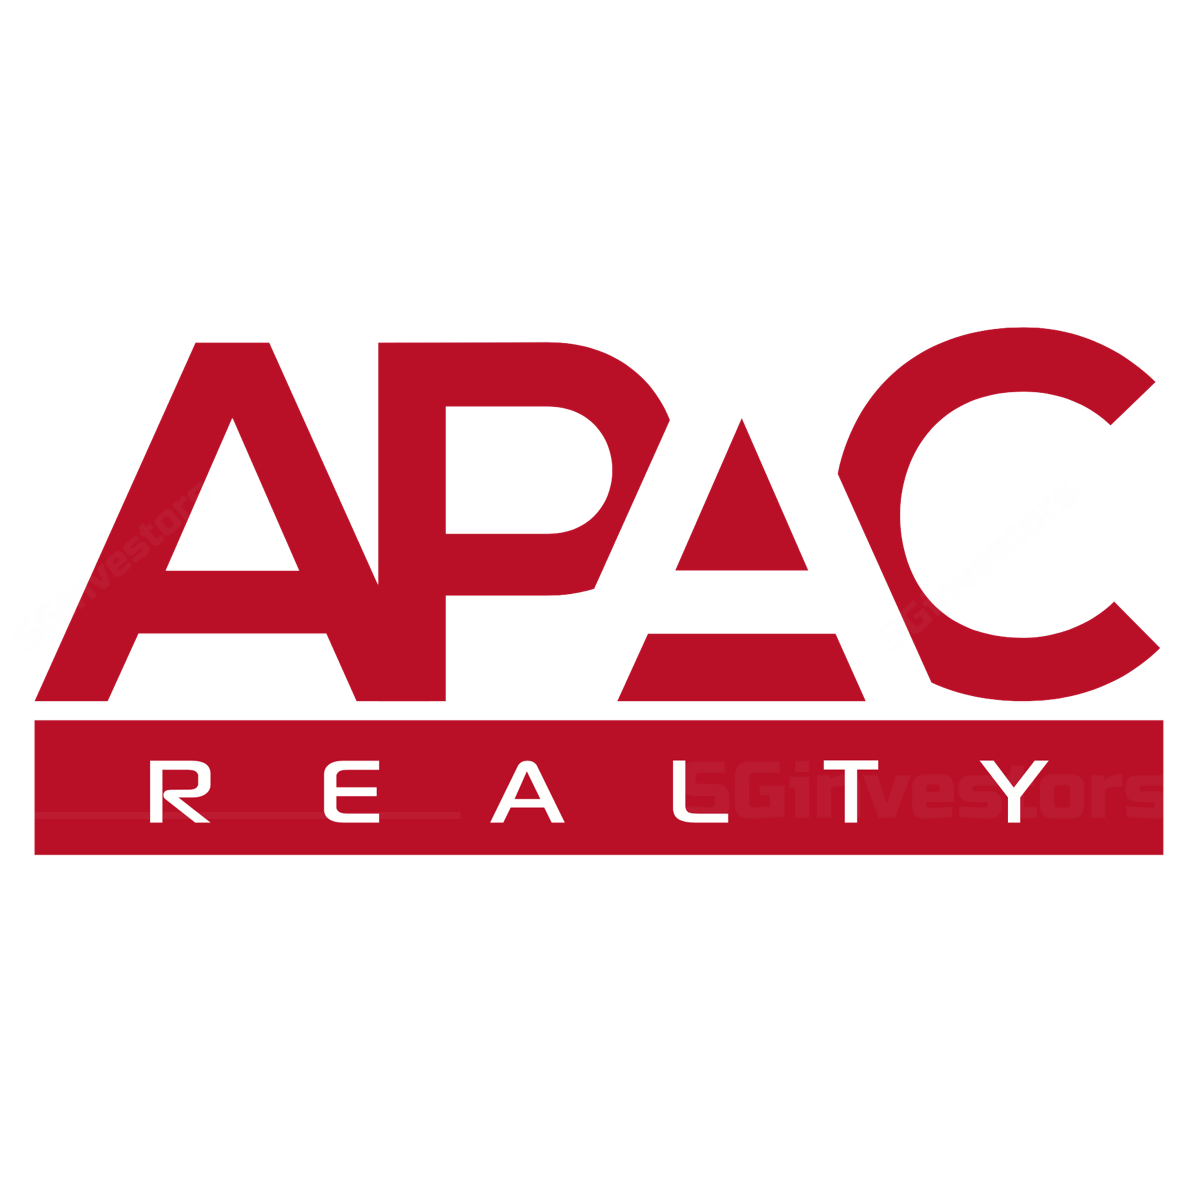 APAC Realty - RHB Invest 2018-02-26: A Promising Start To 2018